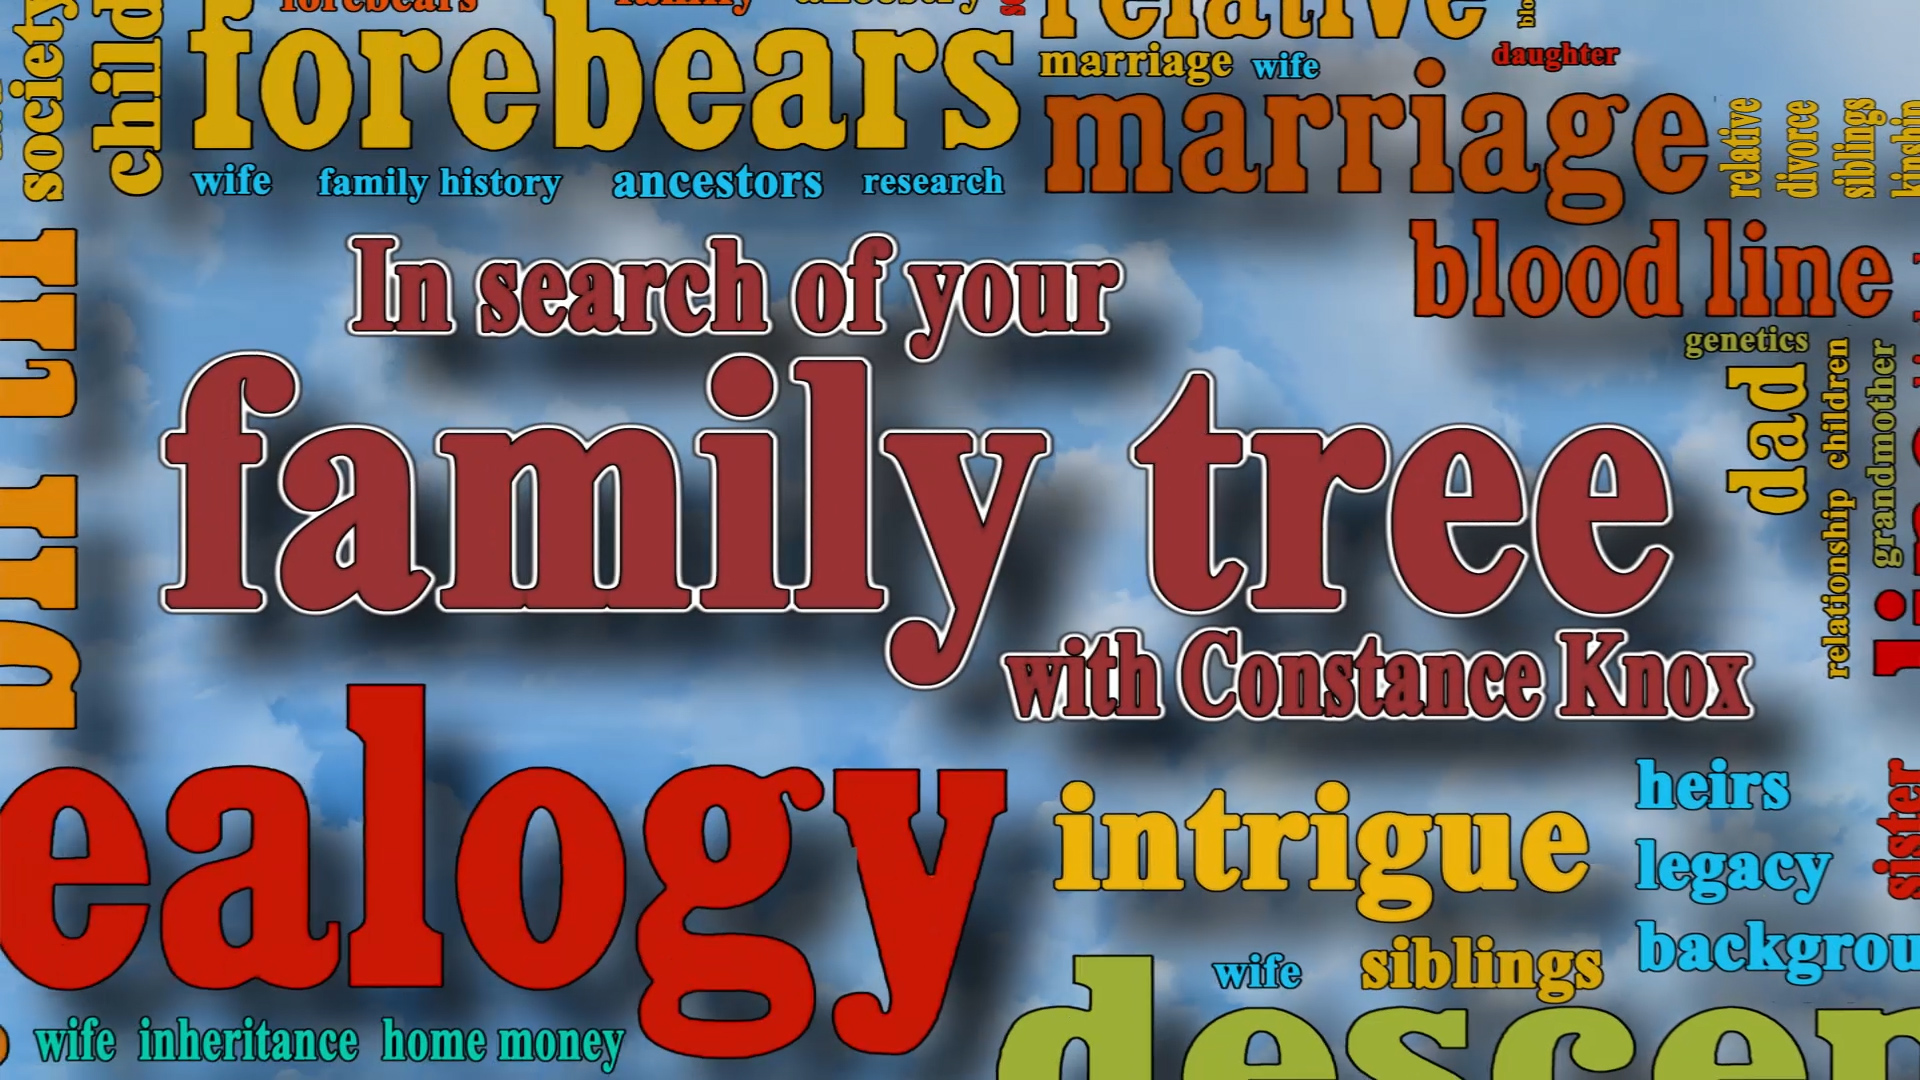 In Search of Your Family Tree with Constance Knox on GenealogyTV.org